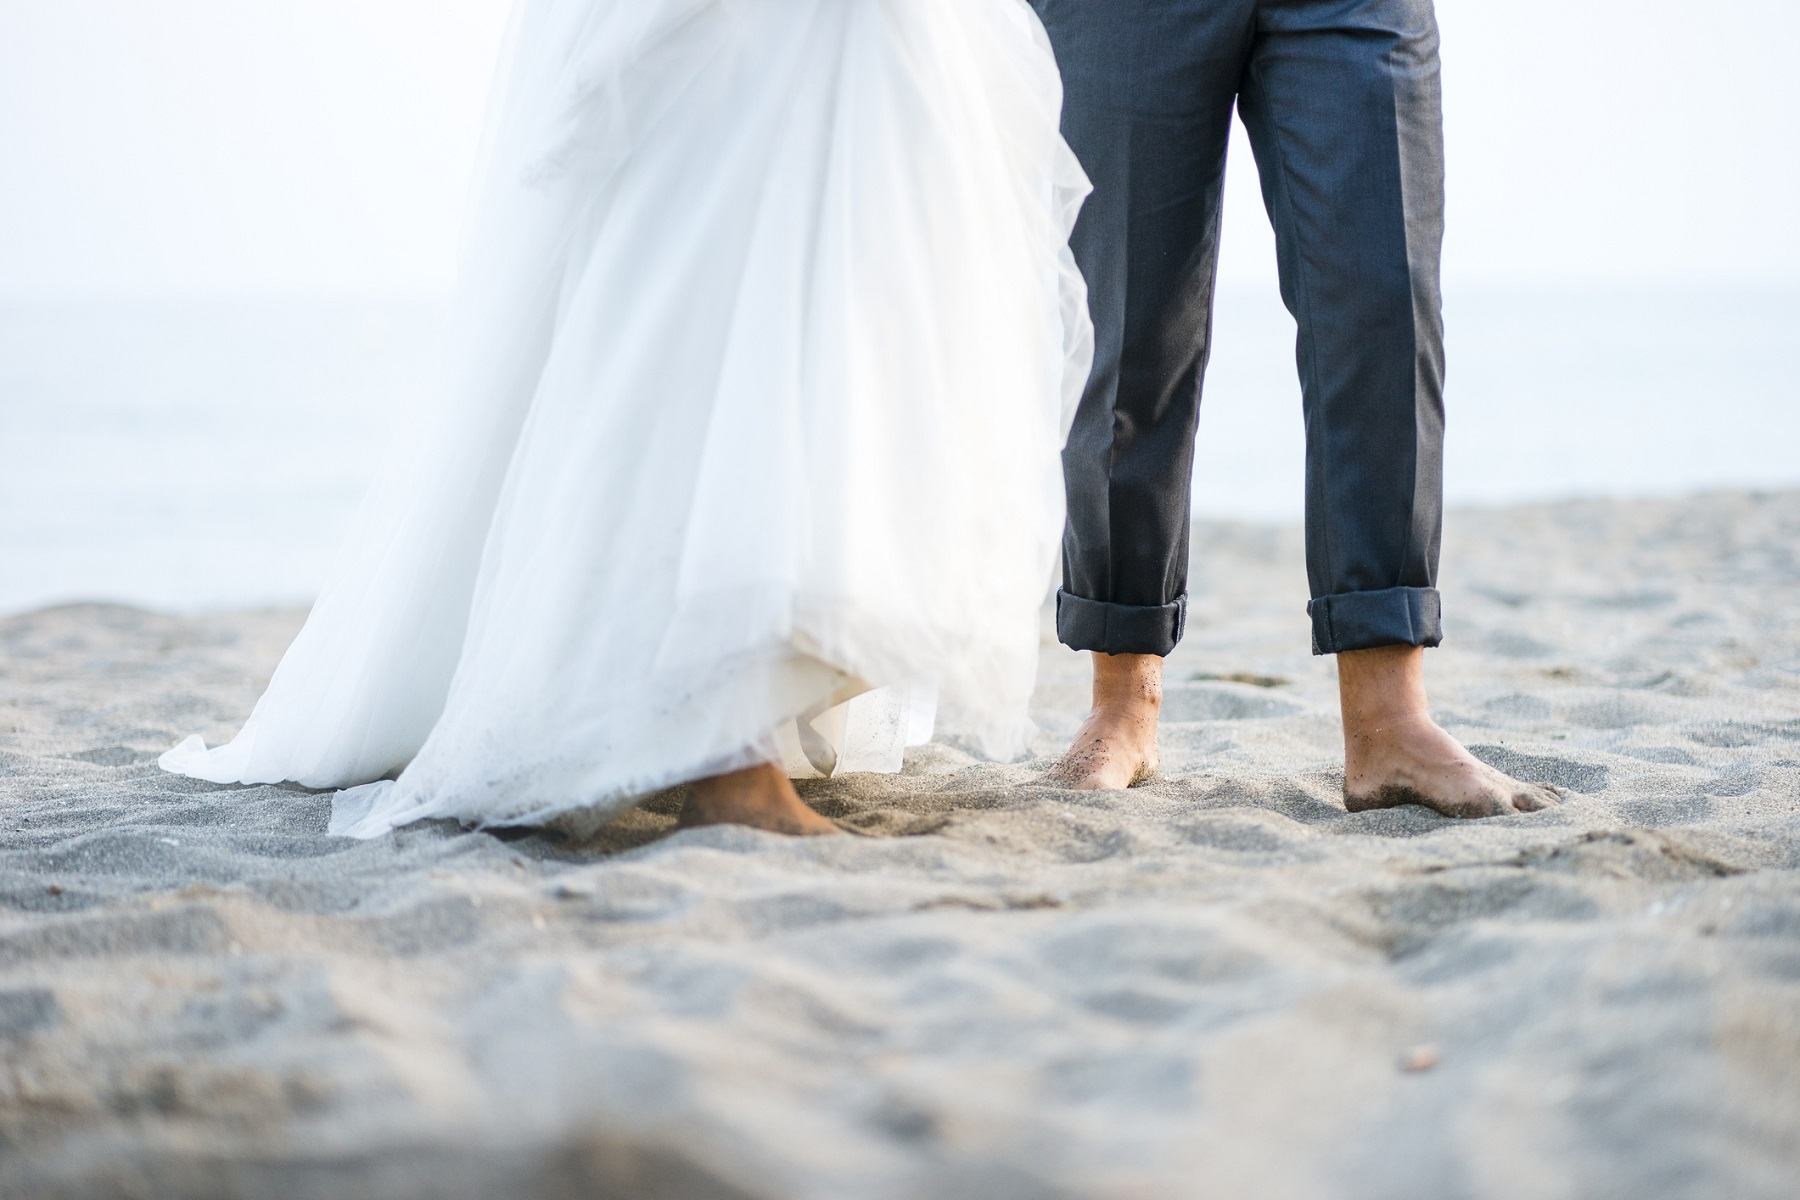 Barefooted bride and groom on the beach